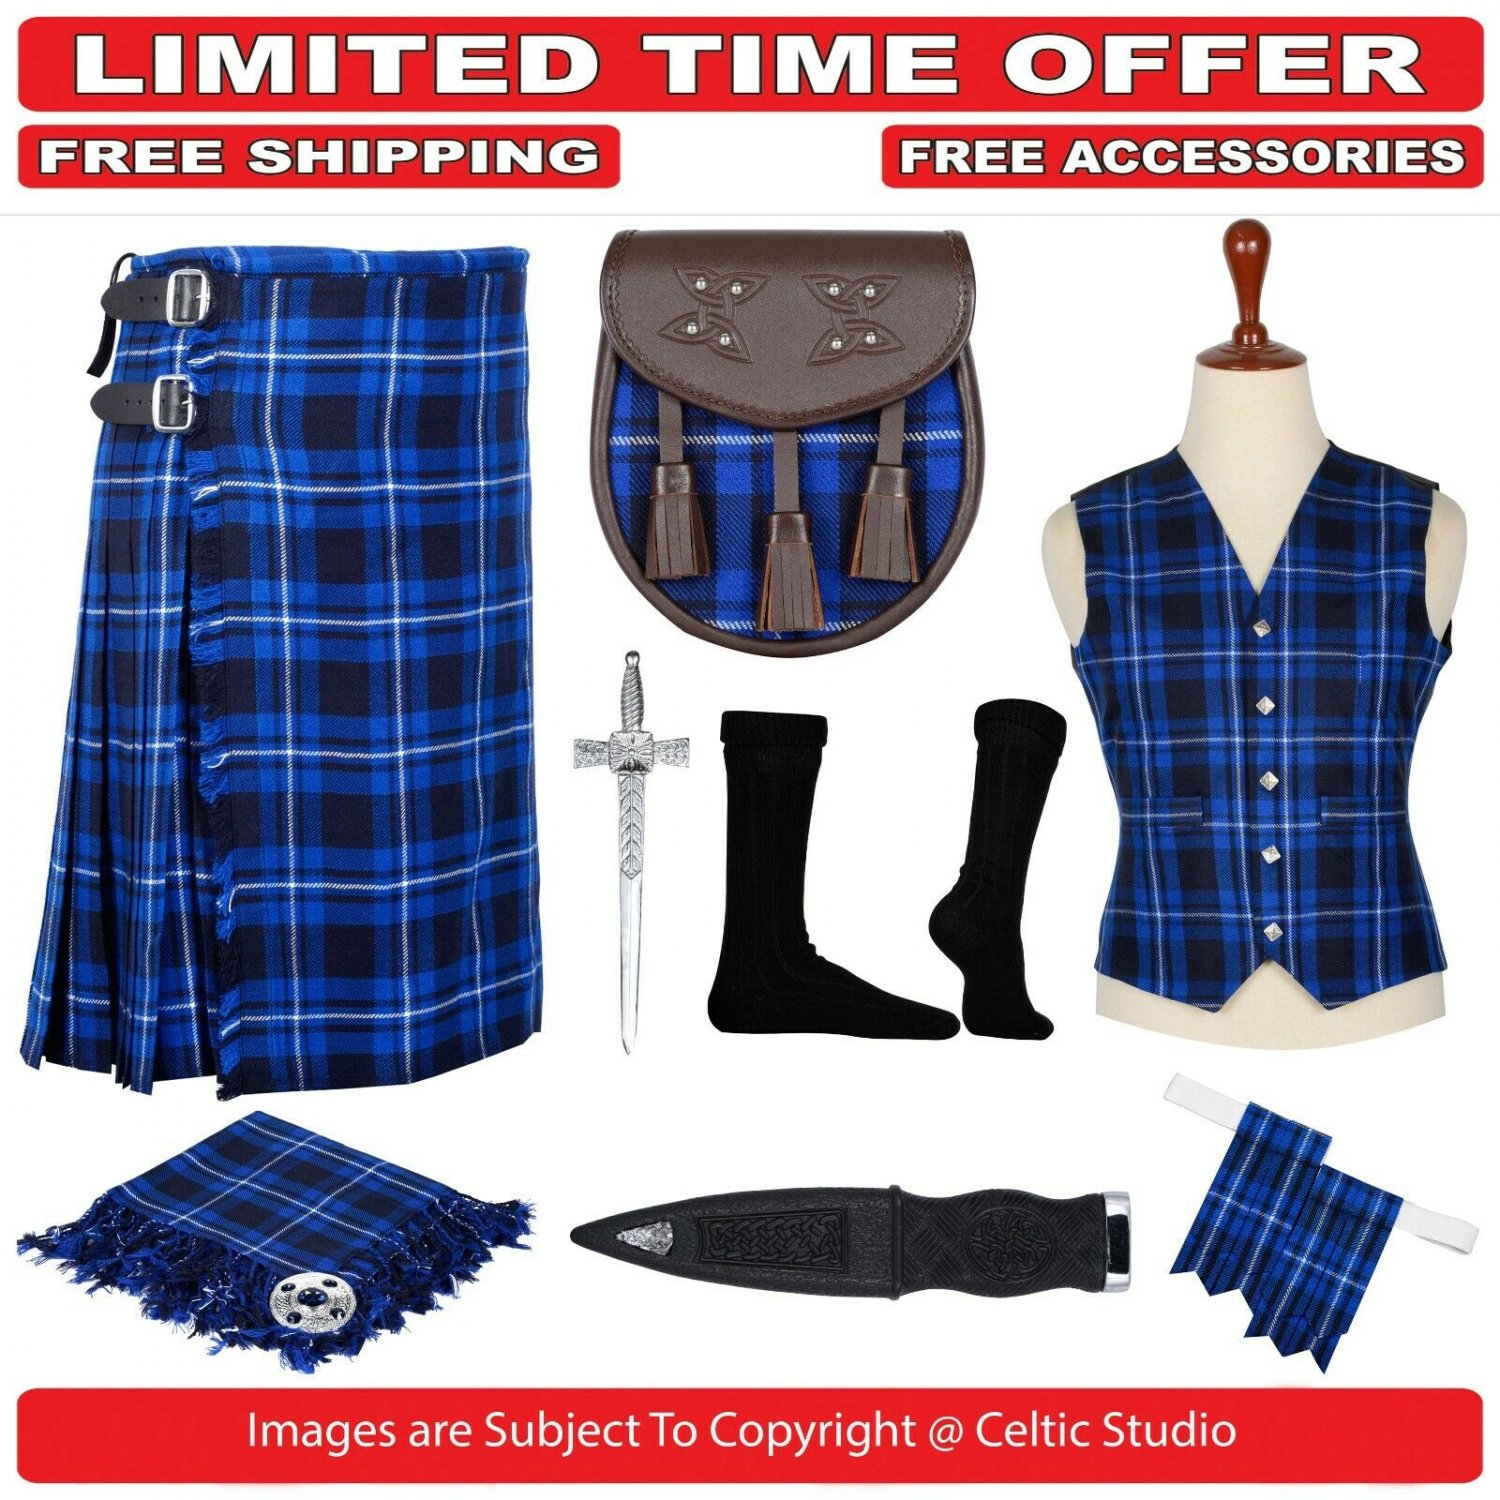 42 size Ramsey Blue Scottish Traditional Tartan Kilt With Free Shipping and 9 Accessories